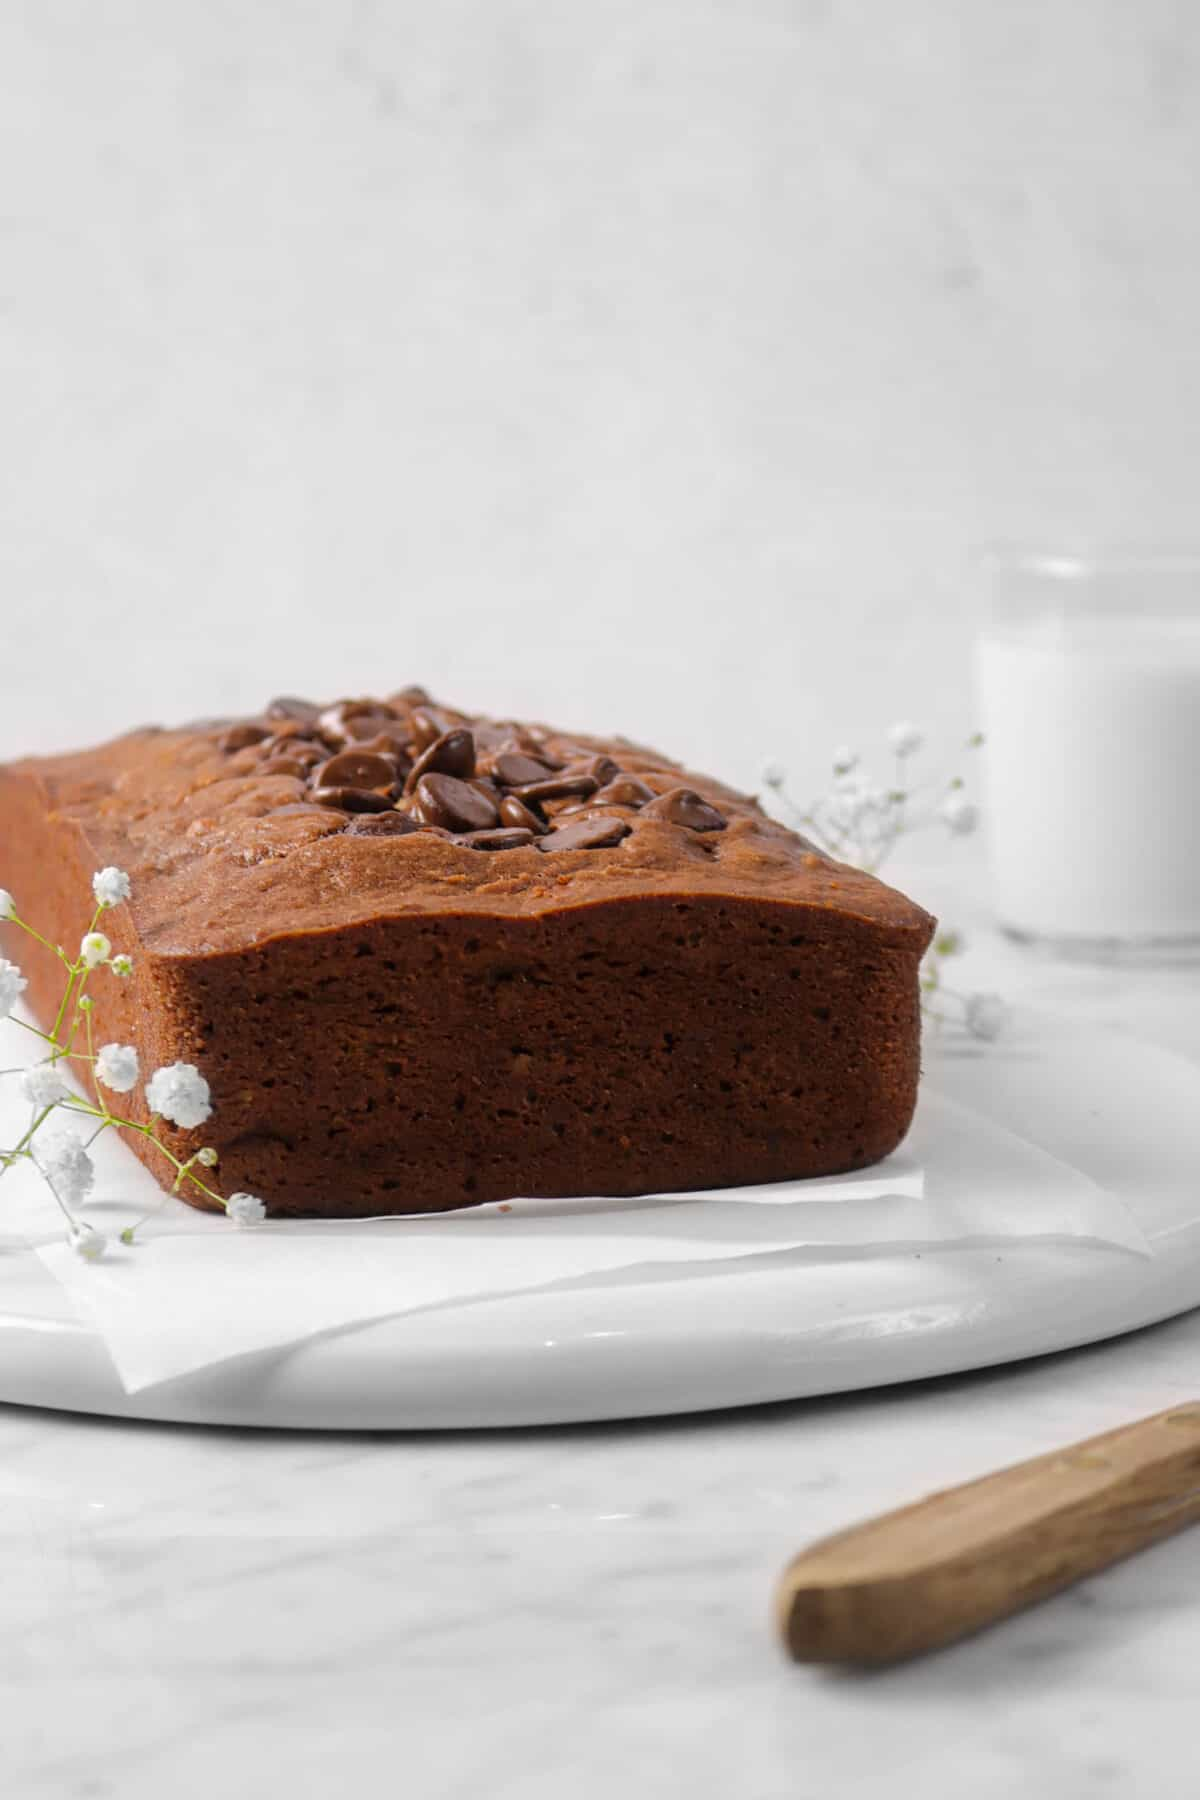 chocolate banana bread on a white plate with parchment, white flowers, glass of milk, and a wood knife